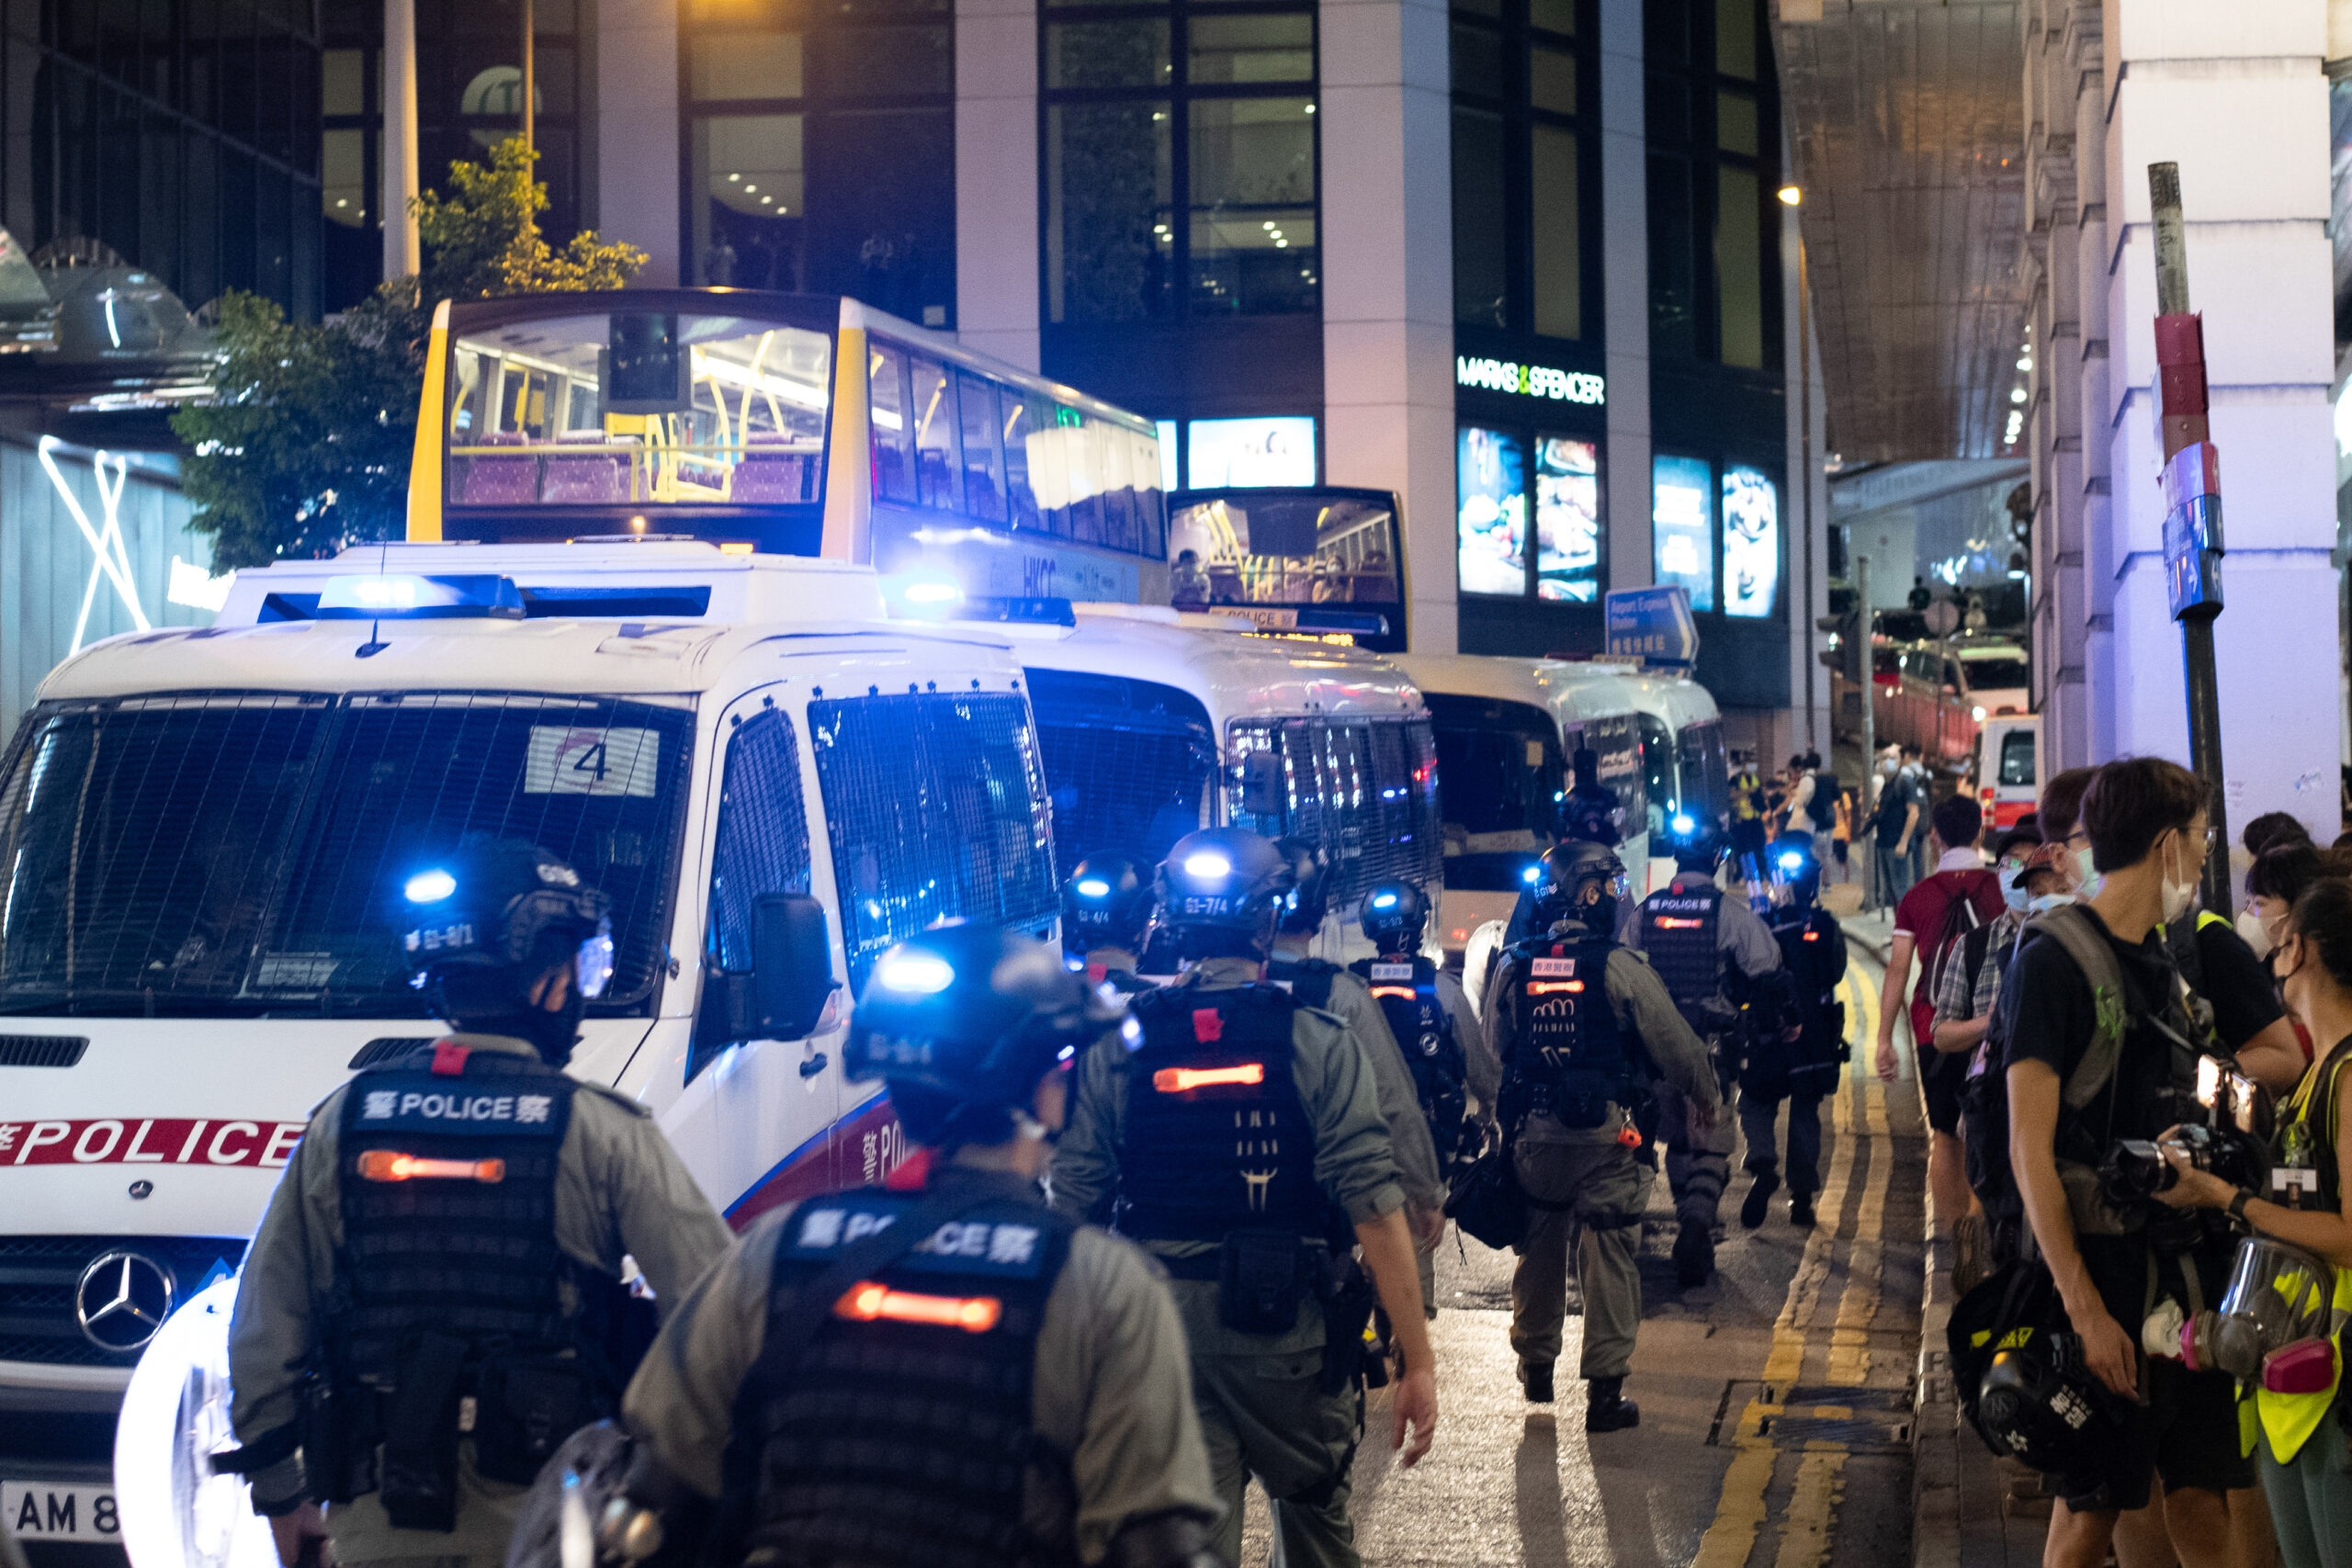 THE WAY WE LIVE NOW: Hong Kong police squash dissent in display of China's muscle